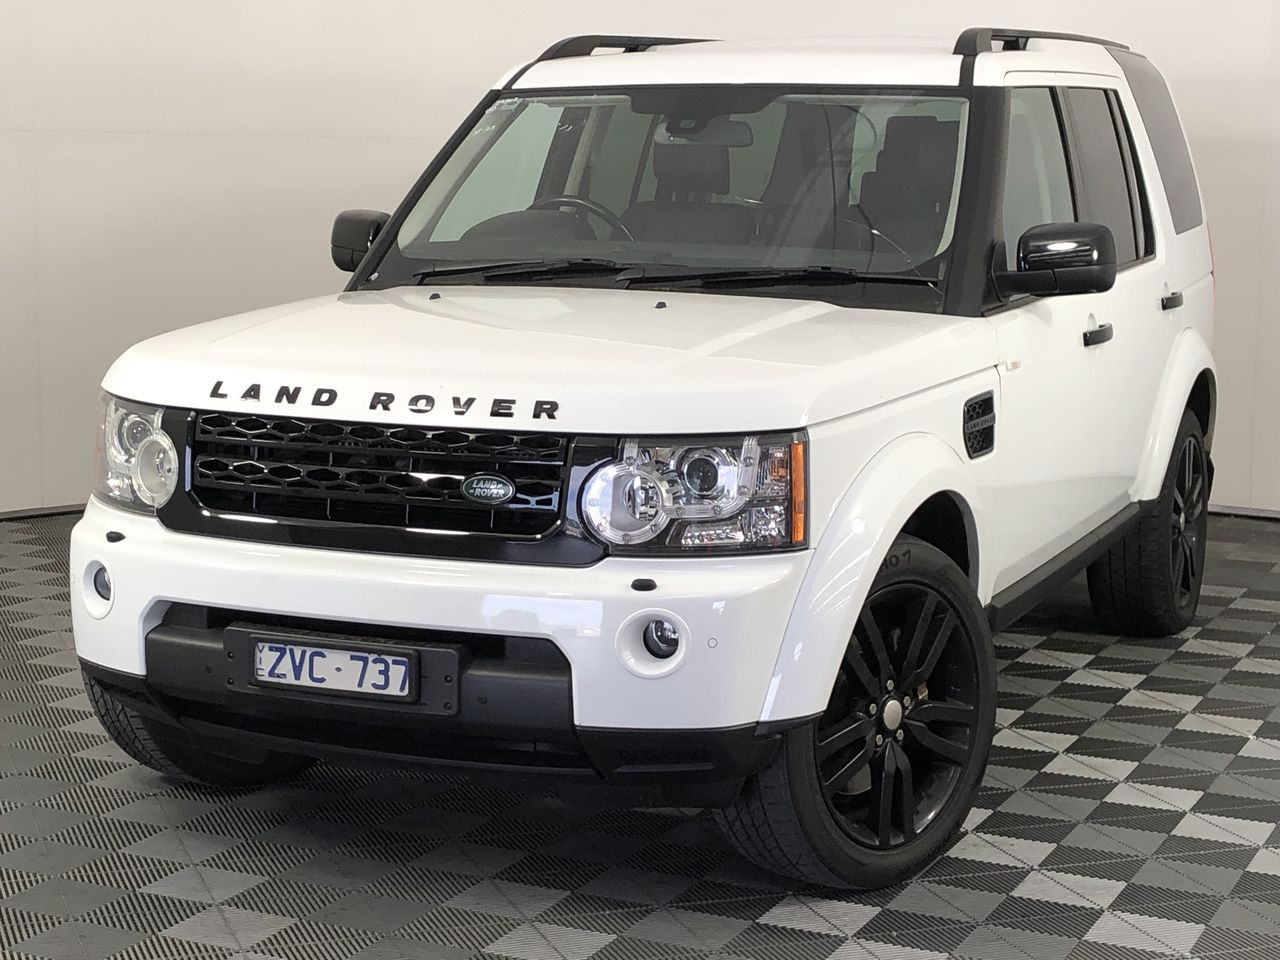 2013 Land Rover Discovery 3.0 SDV6 SE Series 4 Turbo Diesel Automatic